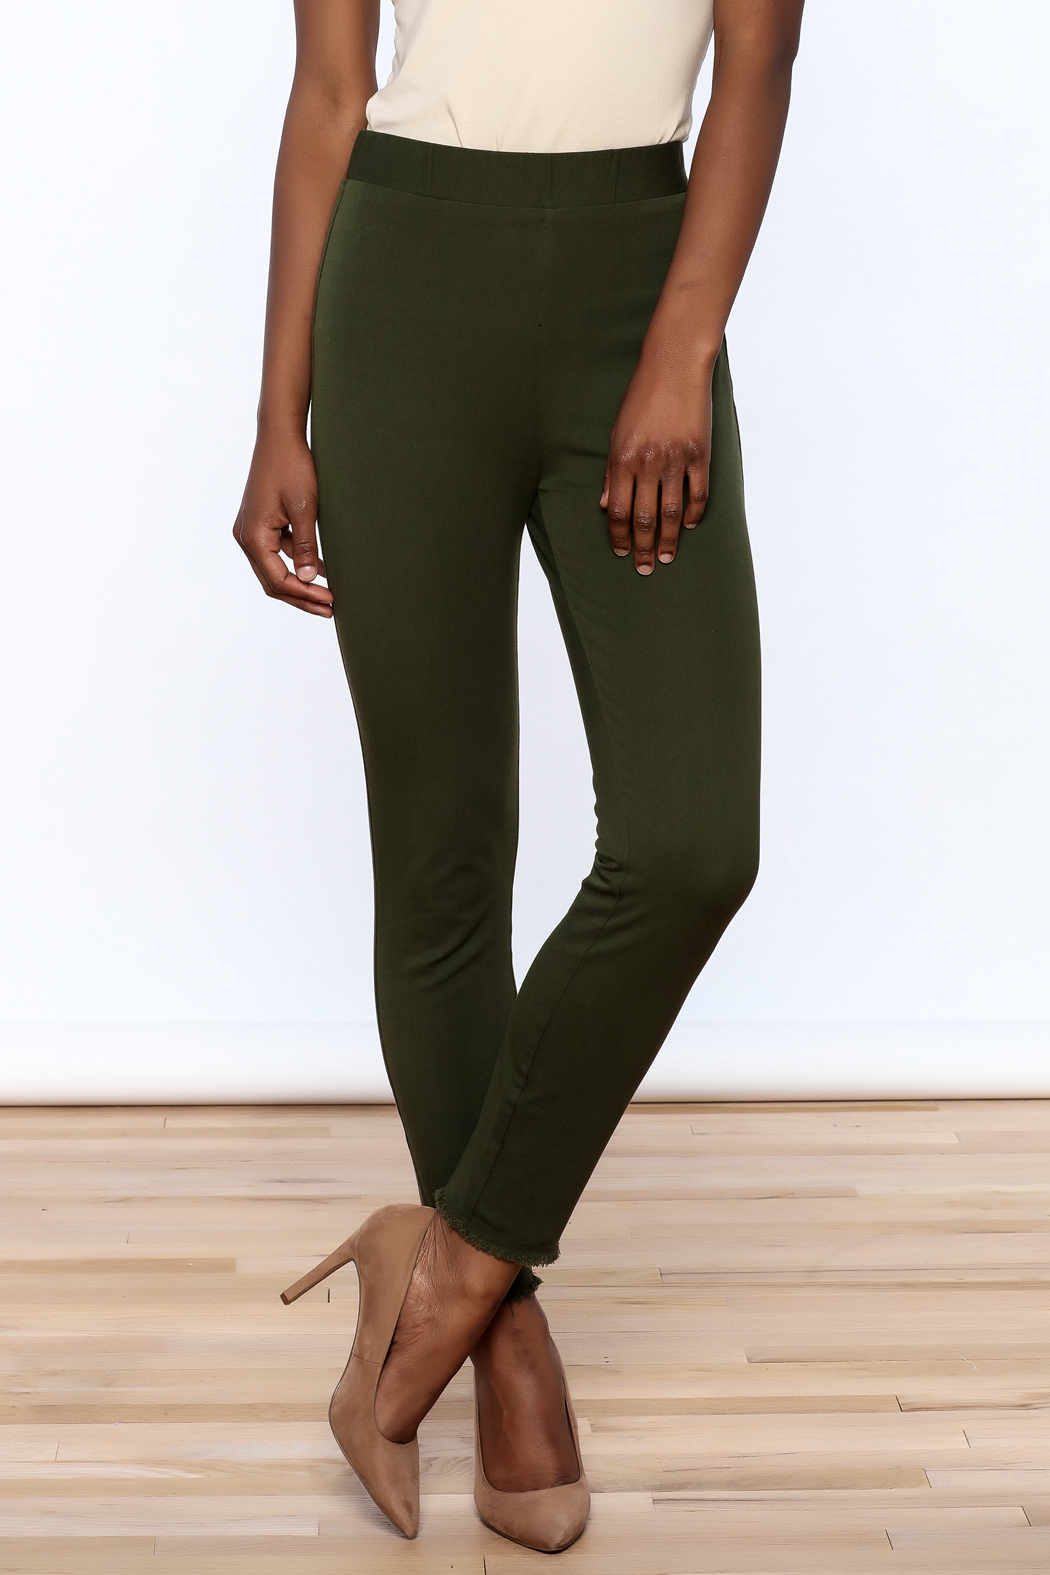 Lysse Olive Green Crop Pants from Cleveland by grey colt — Shoptiques